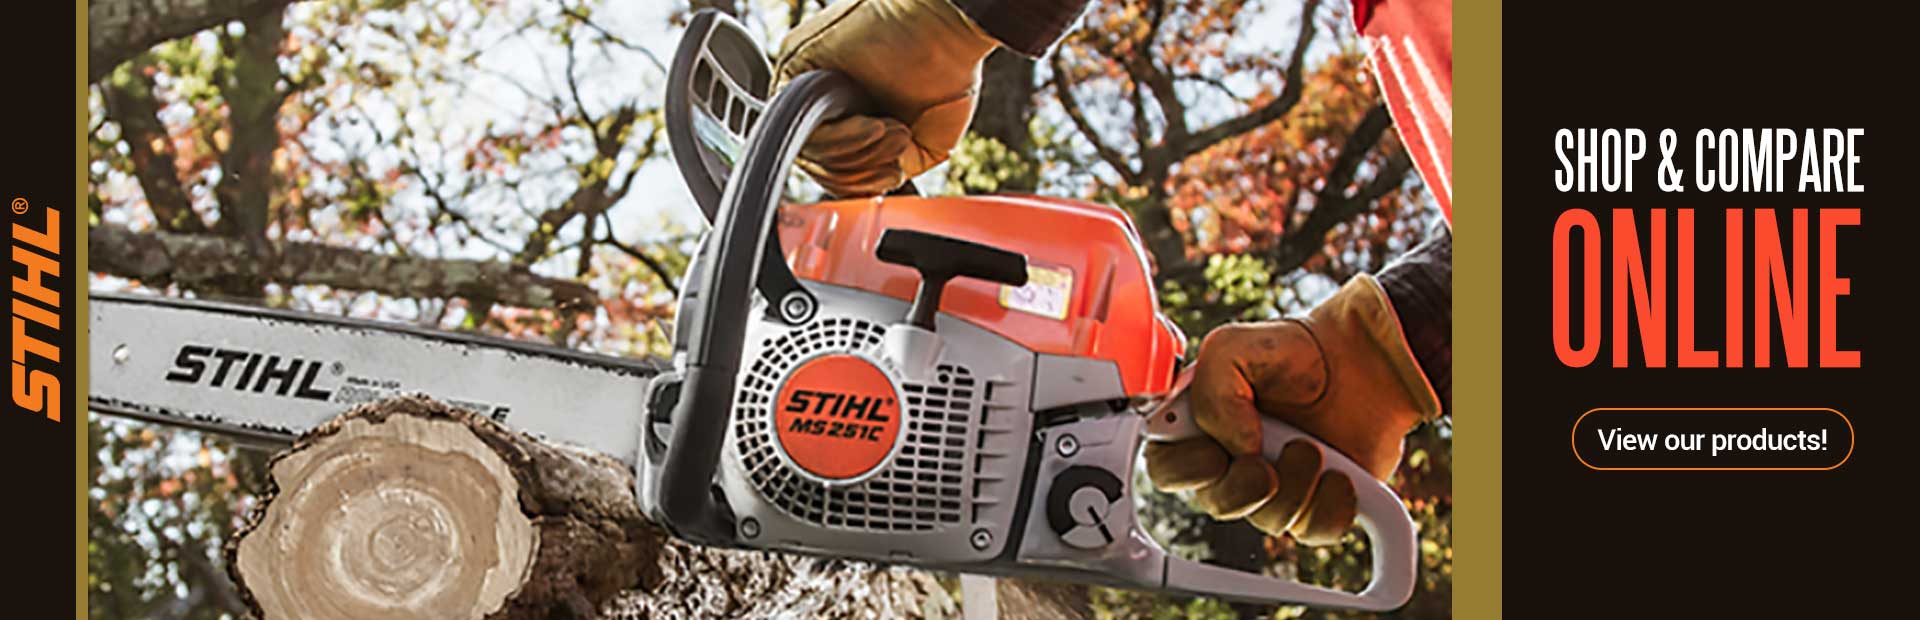 Click here to view equipment from STIHL.